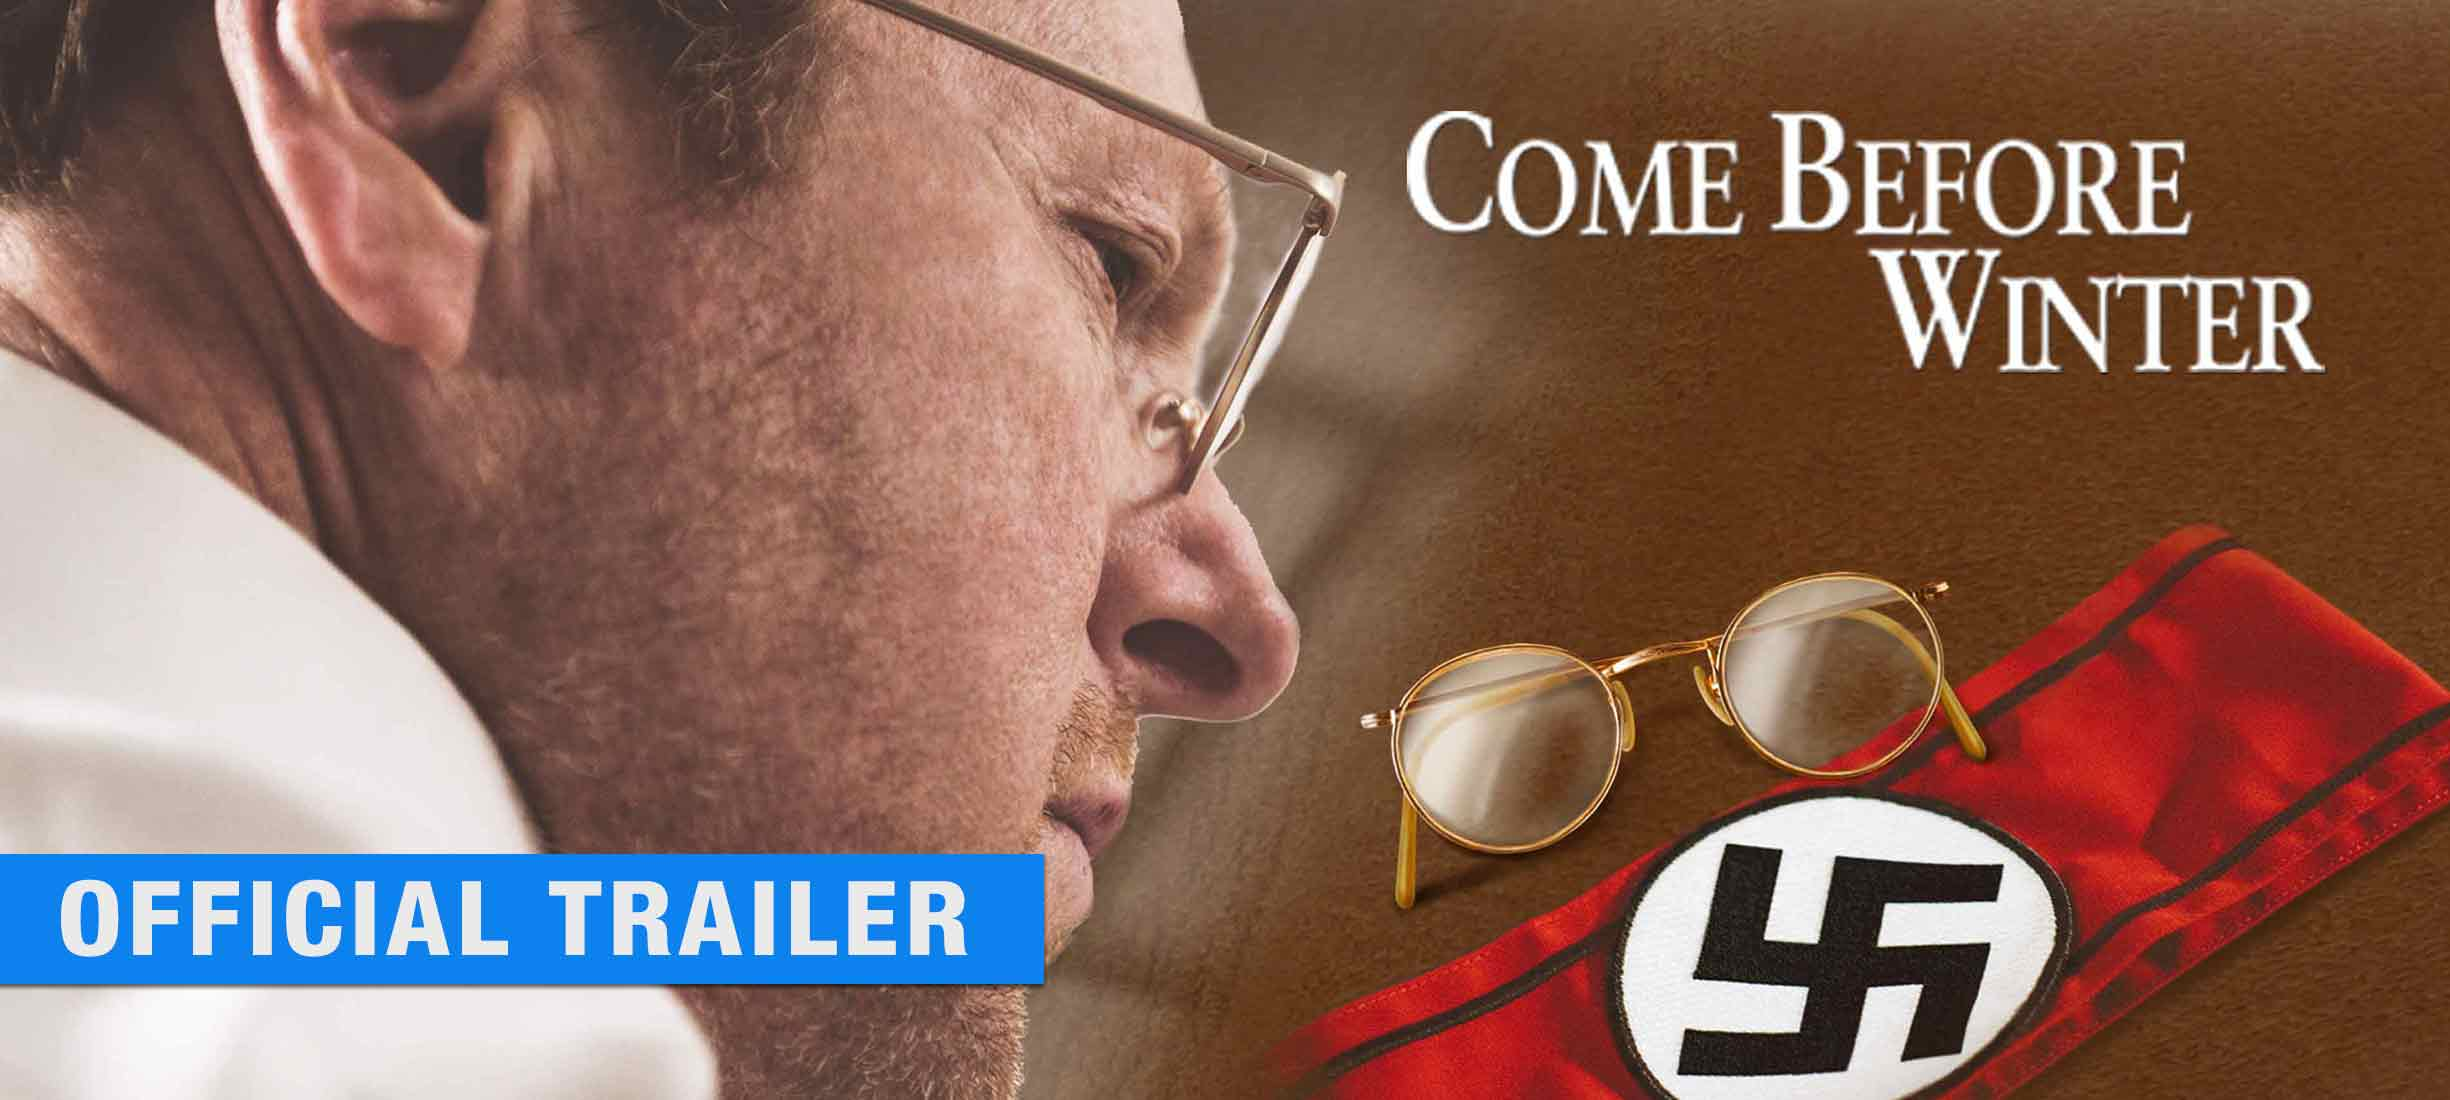 Come Before Winter: Trailer